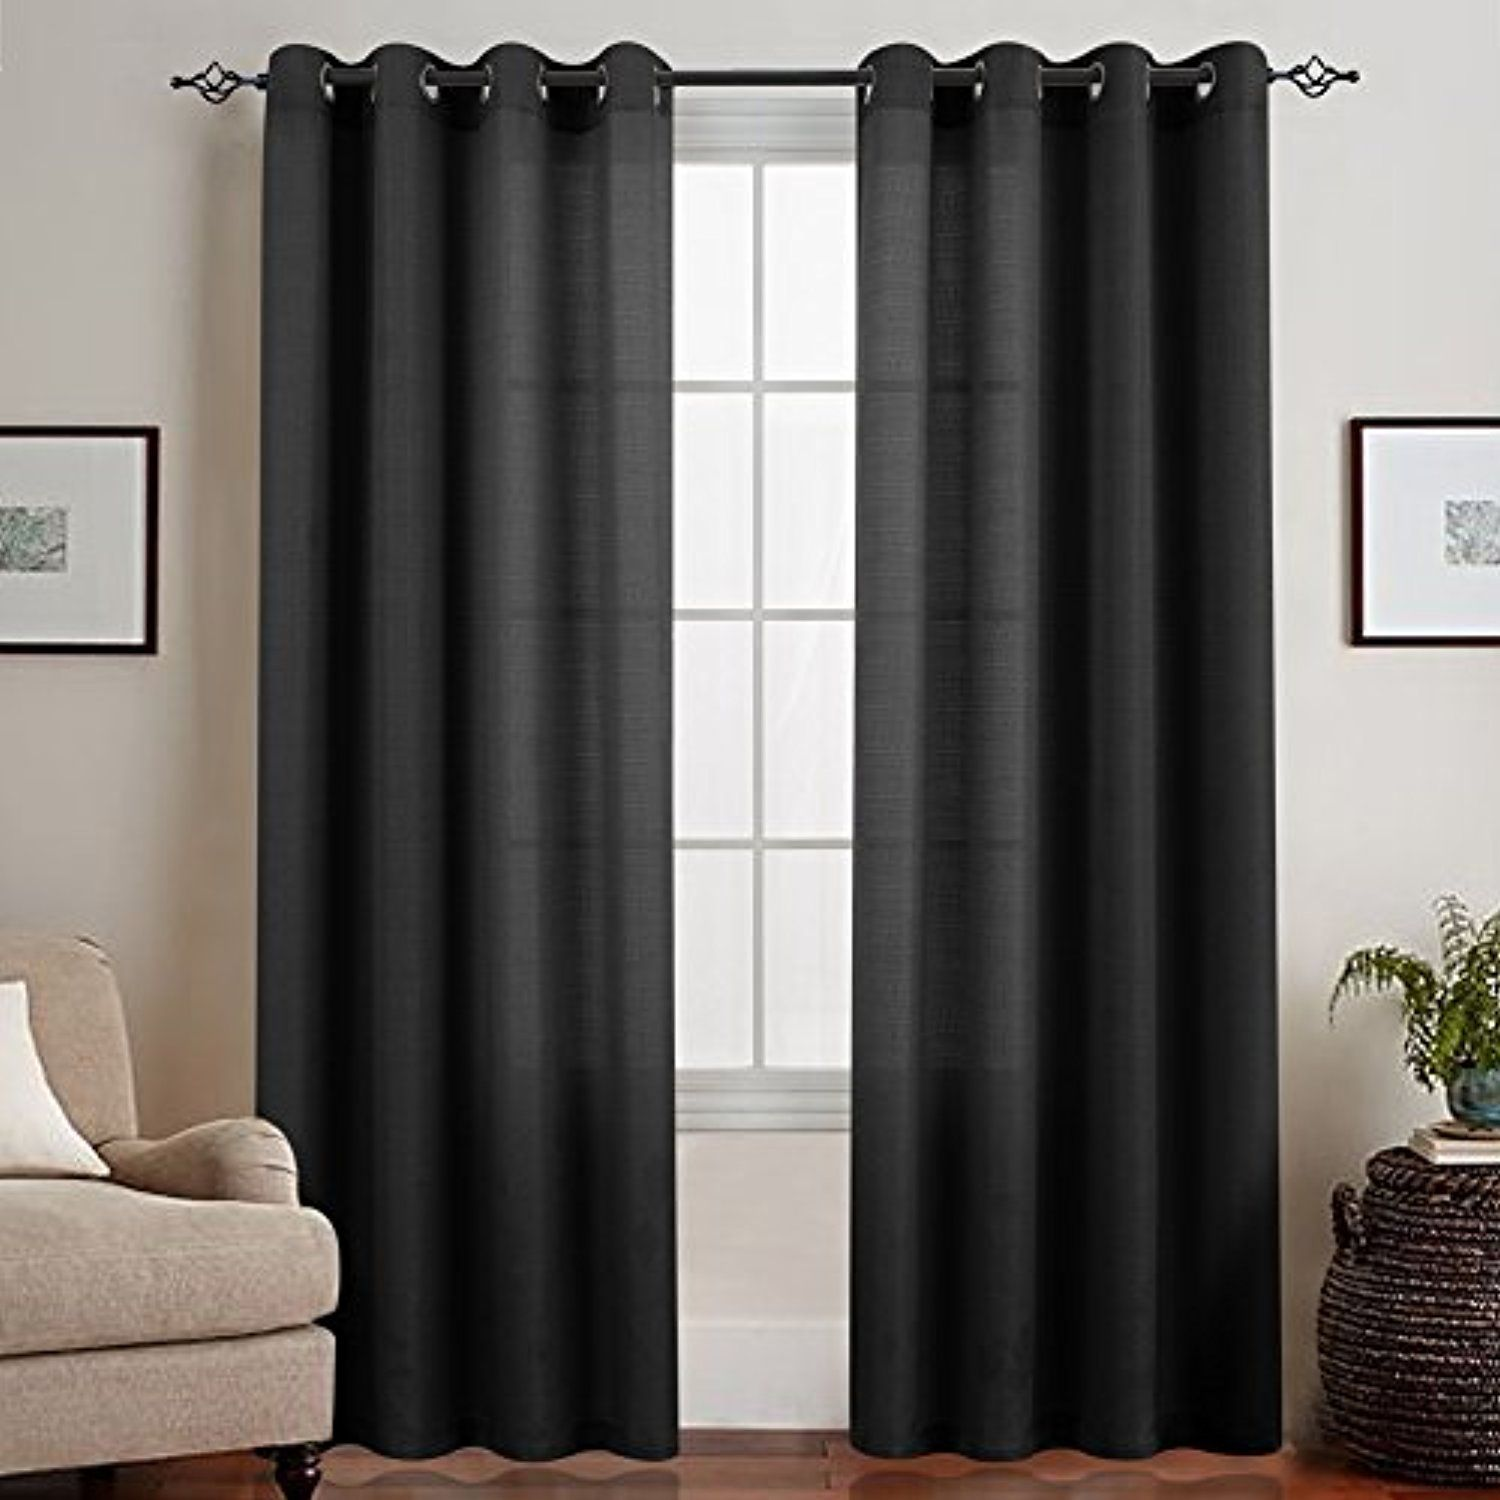 2 window bedroom ideas  semi sheer curtain panels for bedroom privacy casual weave linen